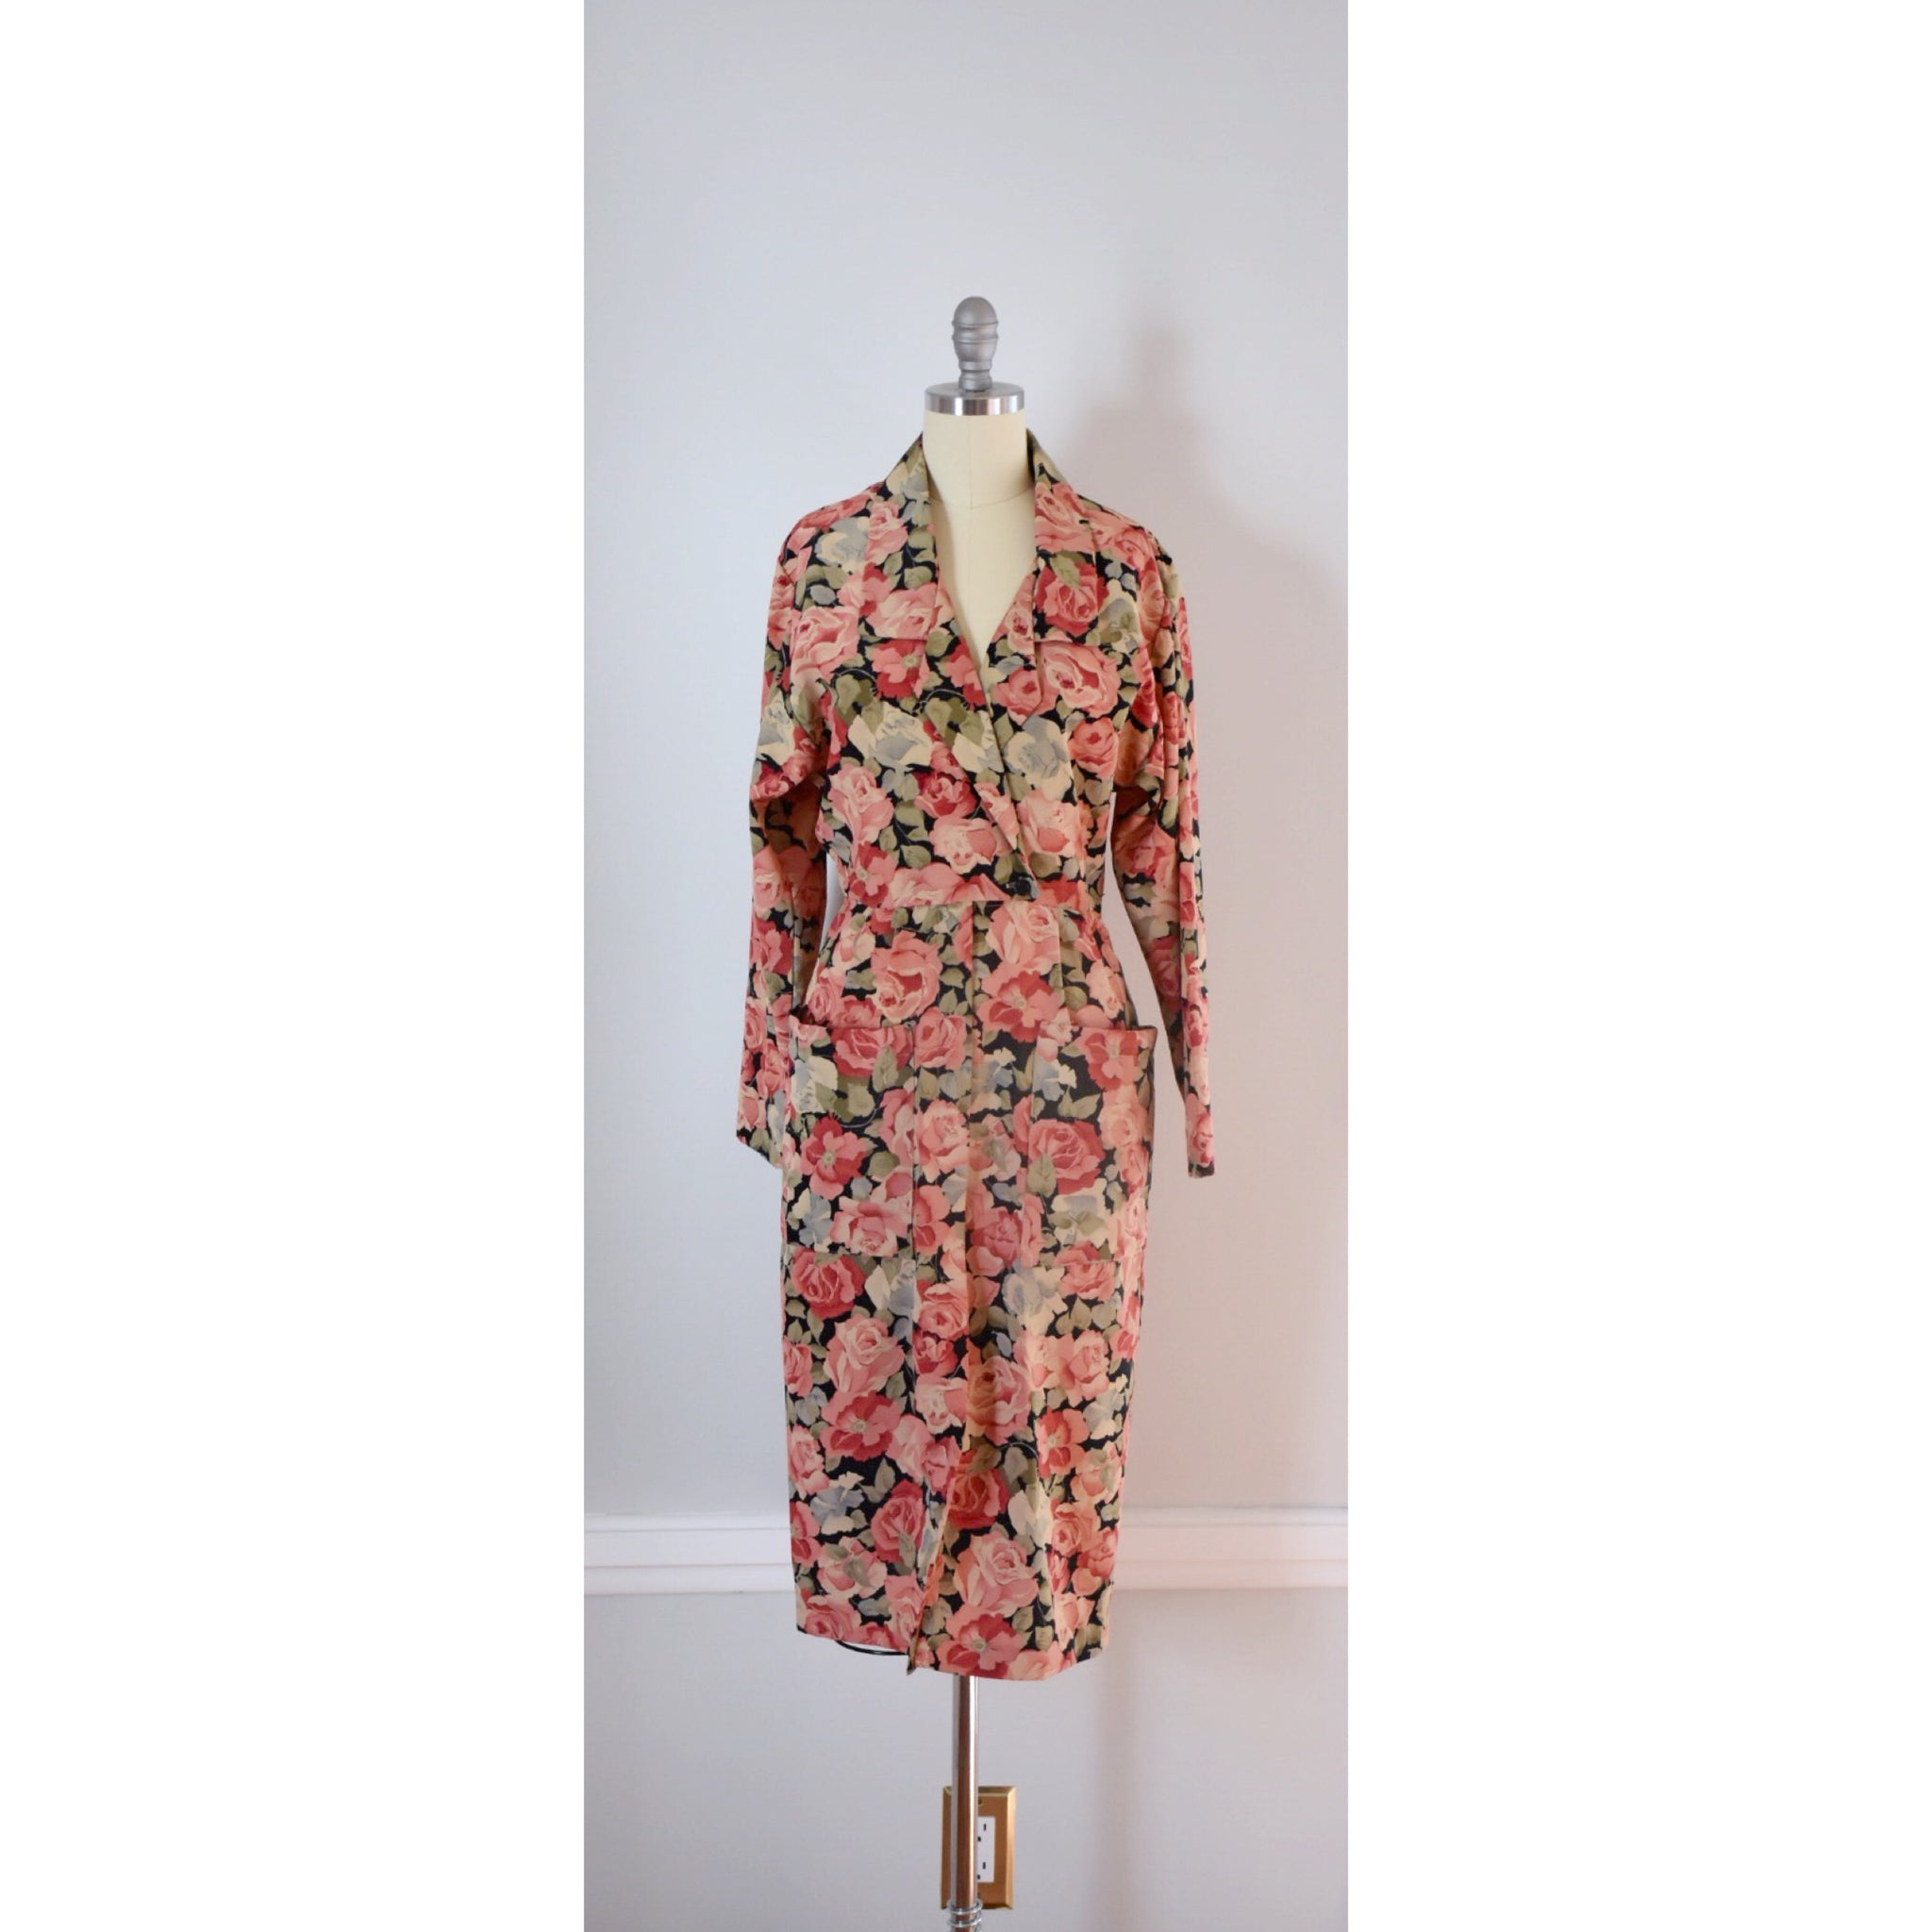 80s 90s Vintage Shirtwaist Dress